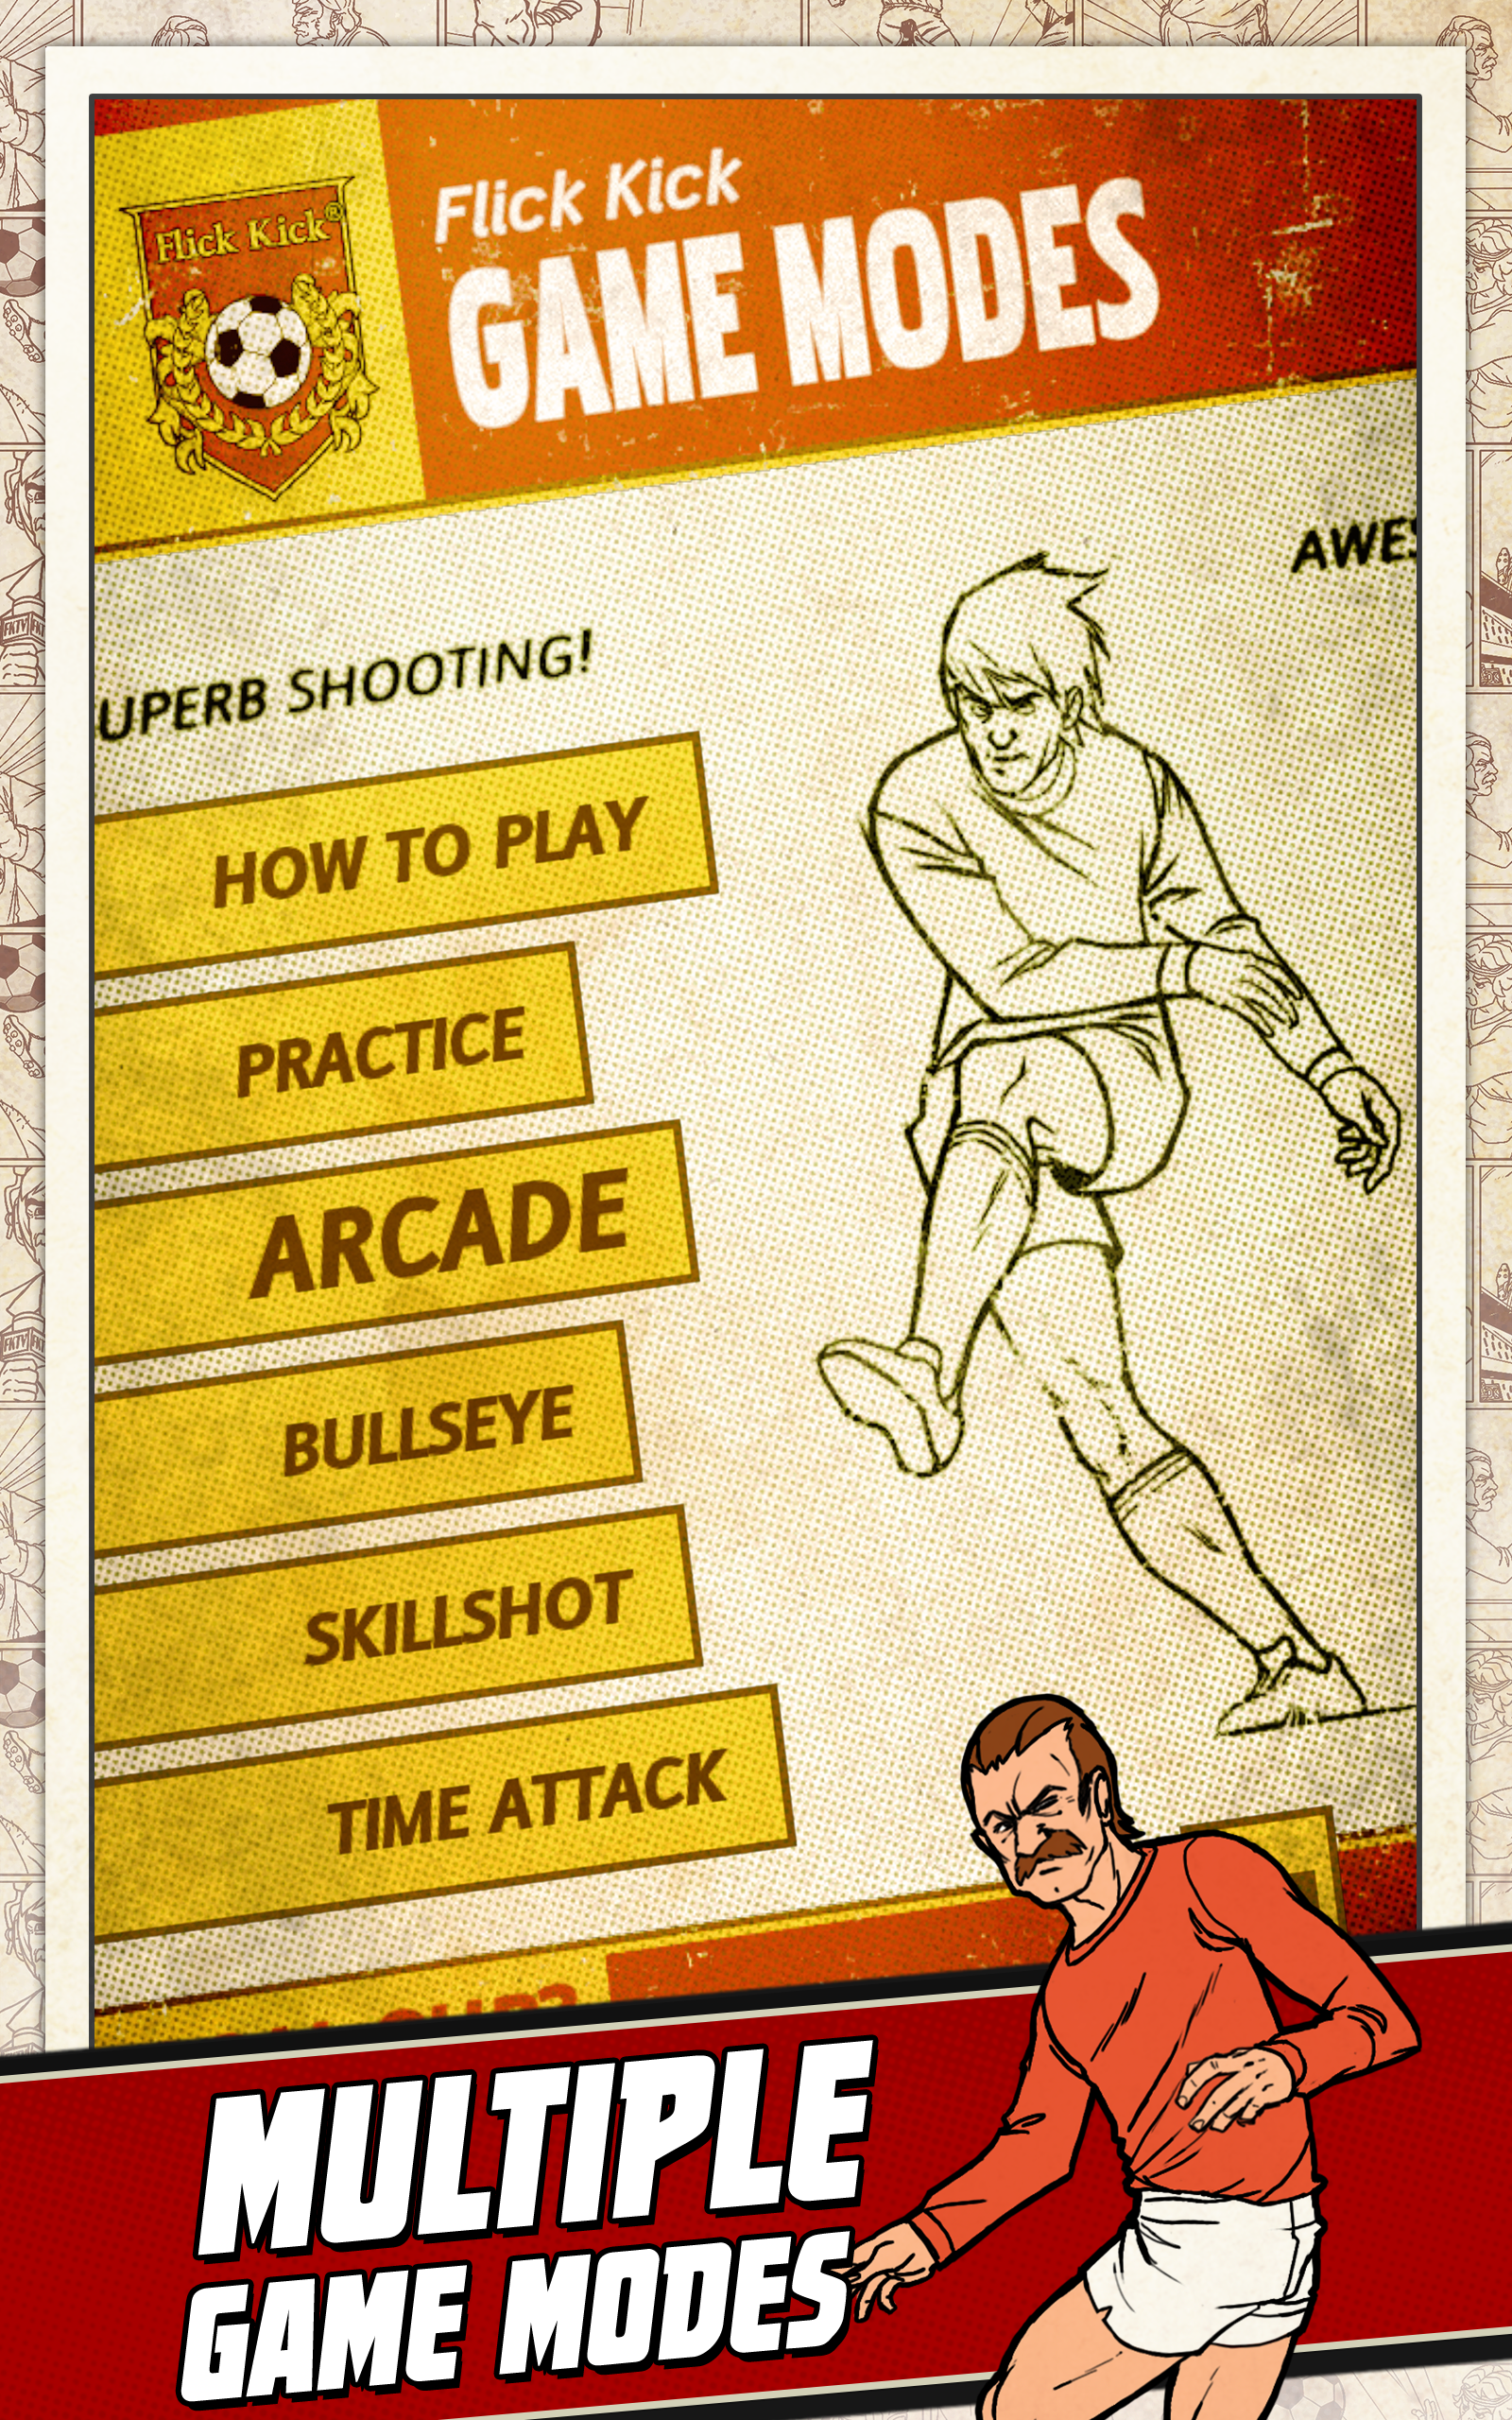 Flick Kick Football screenshot #8